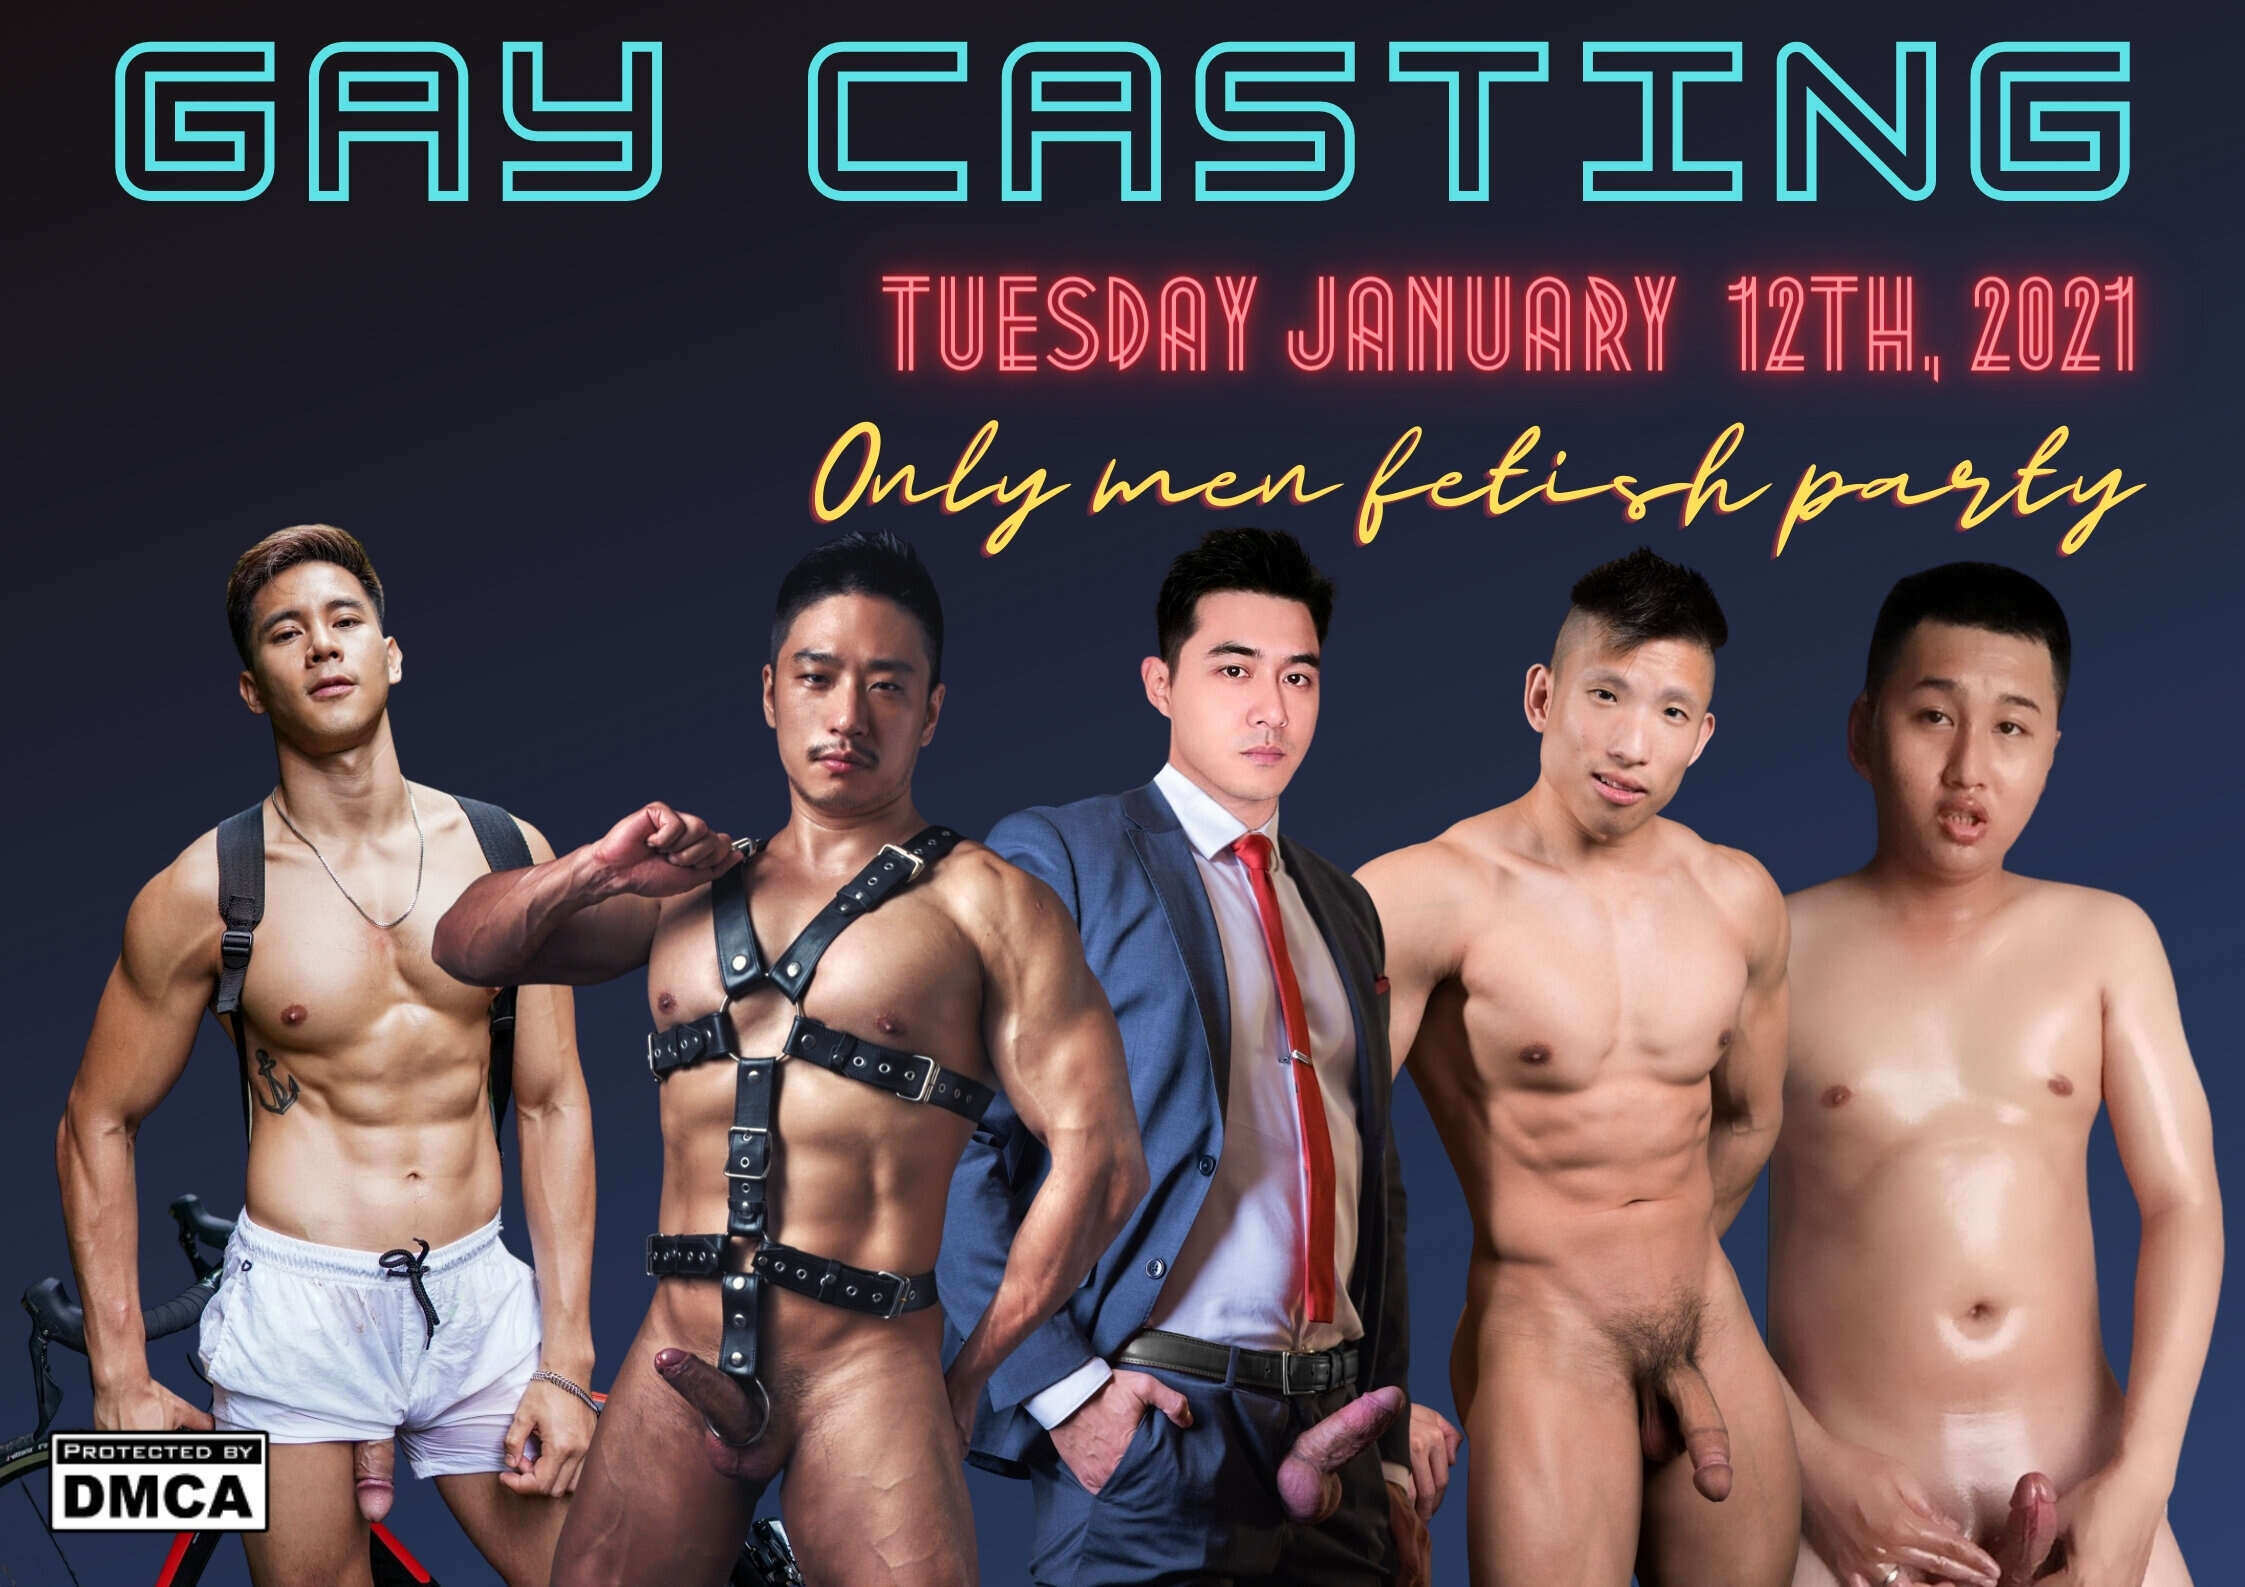 [WWW.TATAKAAHOANG.TK] Gay Casting – Only men fetish party